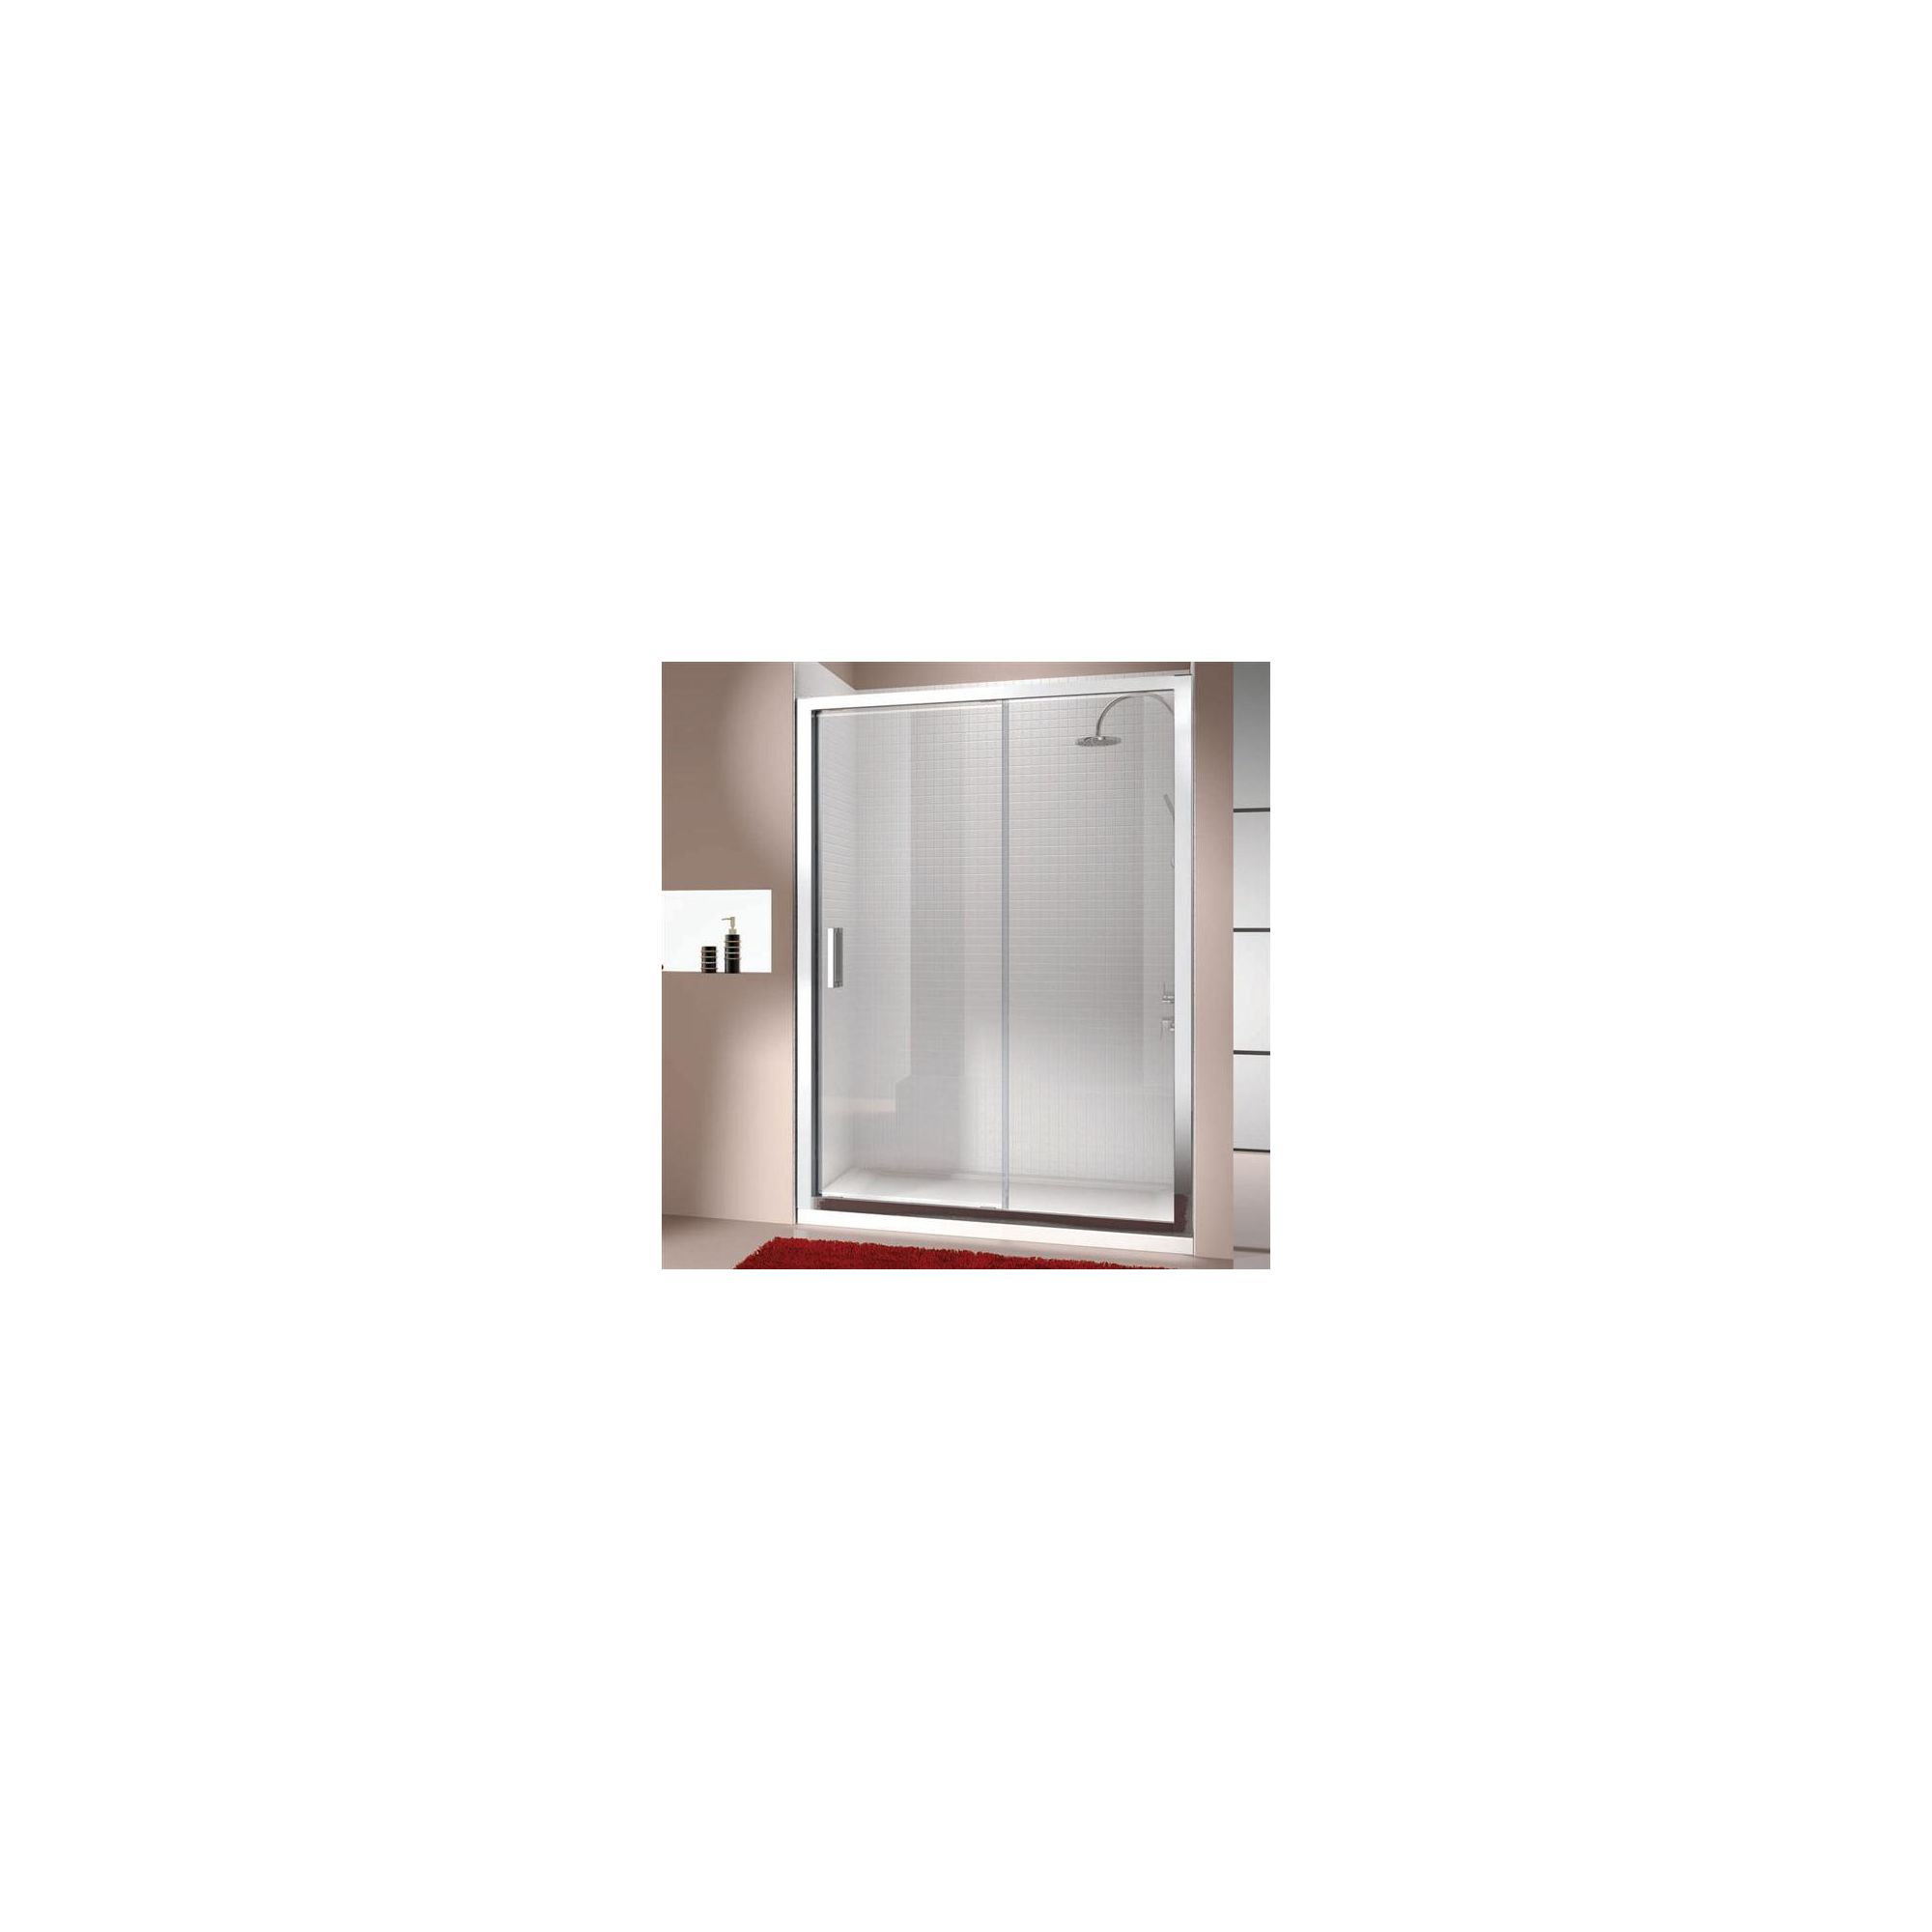 Merlyn Vivid Eight Sliding Door Alcove Shower Enclosure, 1200mm x 800mm, Low Profile Tray, 8mm Glass at Tesco Direct